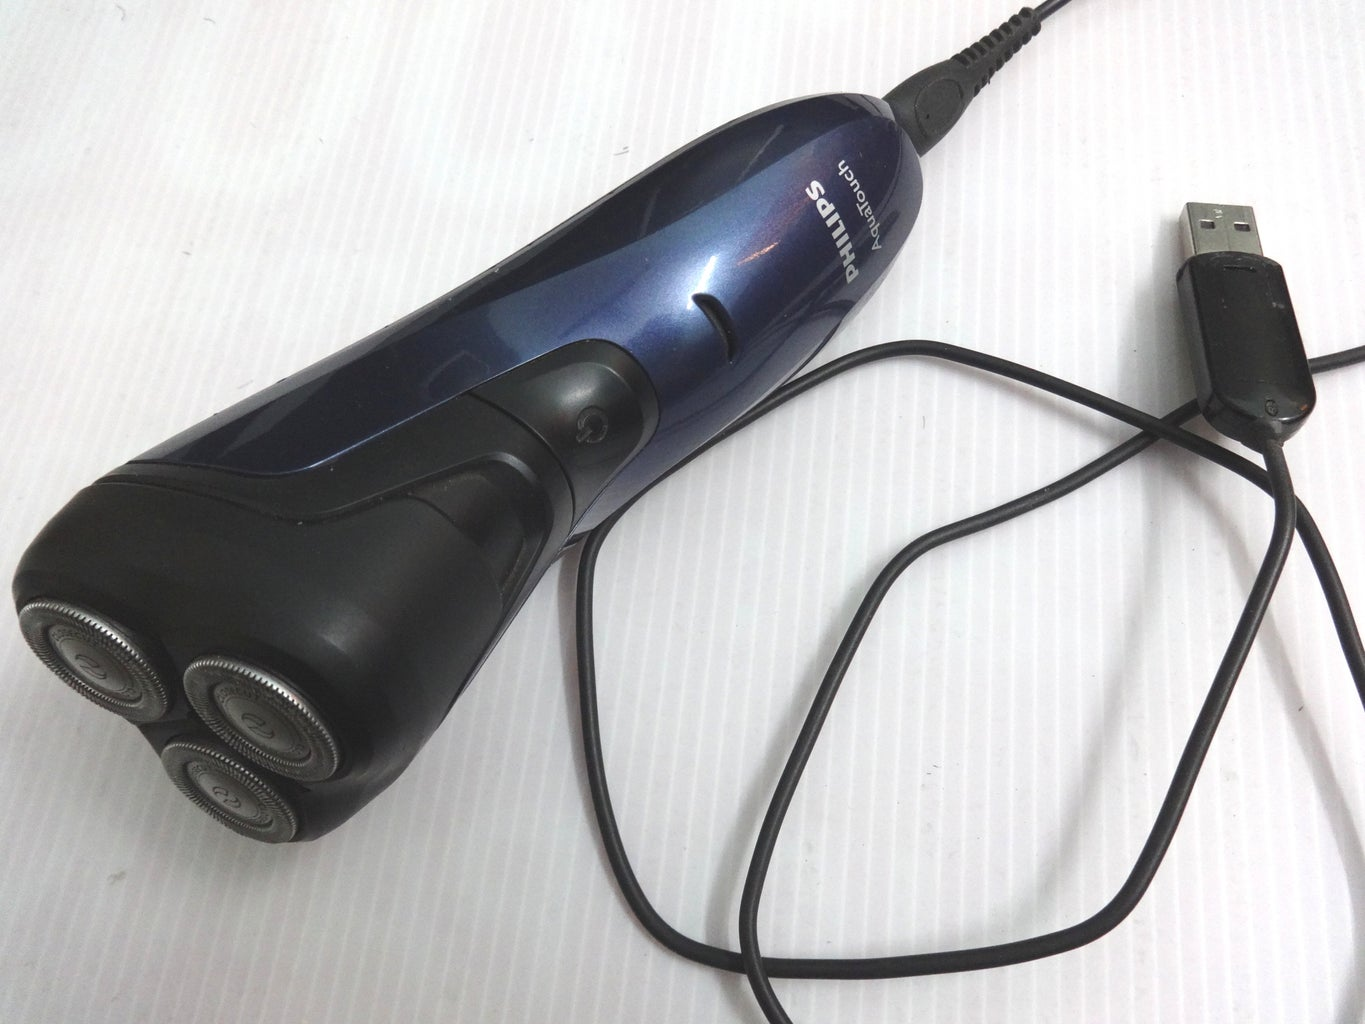 USB Powered Electric Shaver